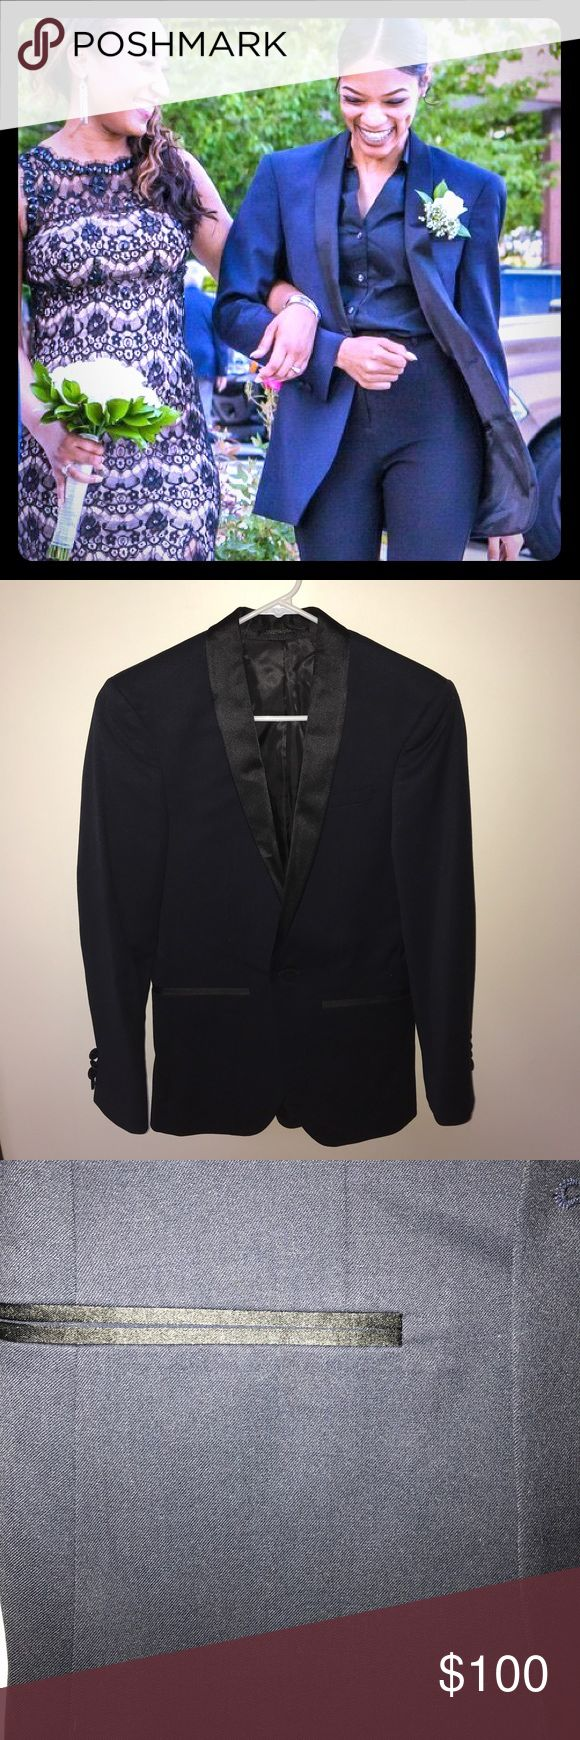 Navy blue blazer Men's navy blue blazer but altered to fit a woman! Navy blue blazer with black lapels! Worn once for a wedding, still in great condition! ASOS Jackets & Coats Blazers